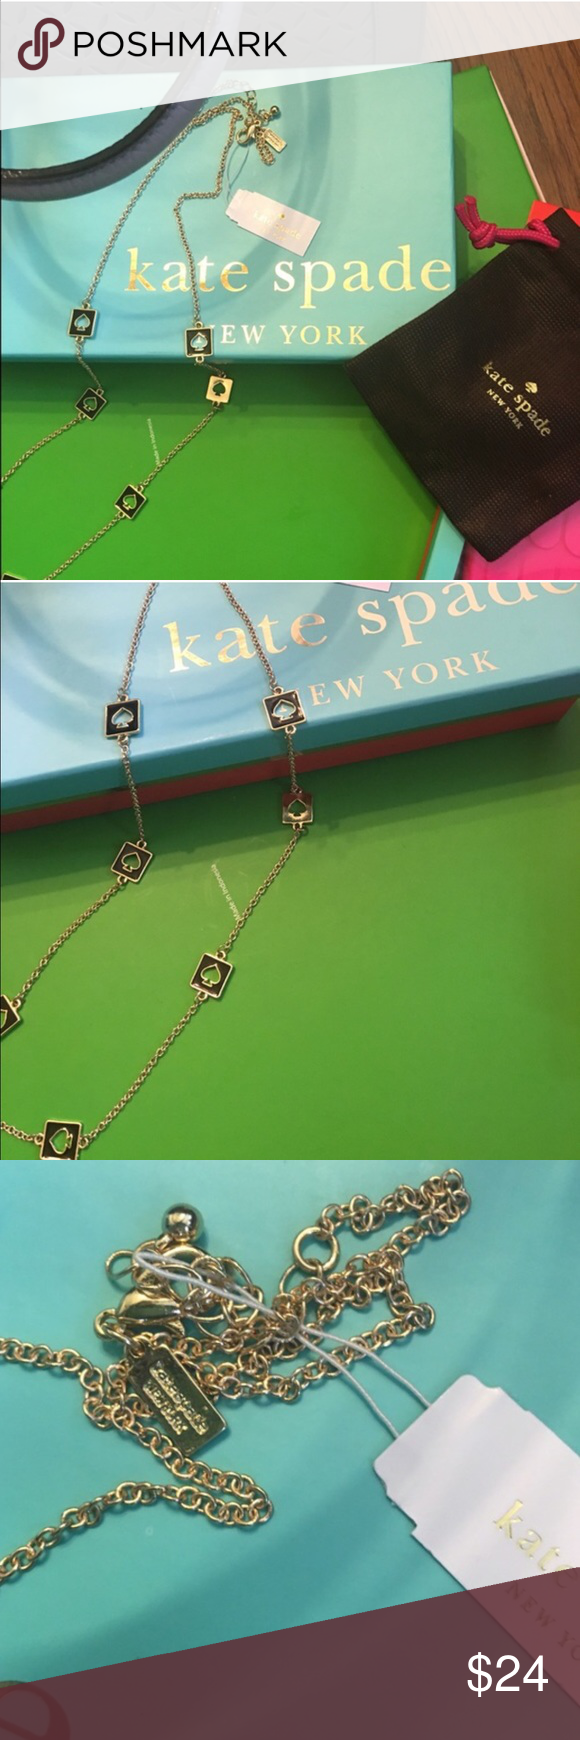 """NWT Kate Spade """"Hole Punch"""" Long Necklace MAKES A GREAT GIFT AT THIS PRICE POINT!  New with Tags &  Approximately 30"""" in length. This listing is for the gold tone with black spades but please see my closet for the same necklace in yellow, bright pink, red, and white. Matching earrings will be listed for most colors. Will bundle the 2 pieces at a special price. The greatest thing about this authentic Kate Spade piece is that it can be be reversed and worn as all gold.  Retail price is $68…"""